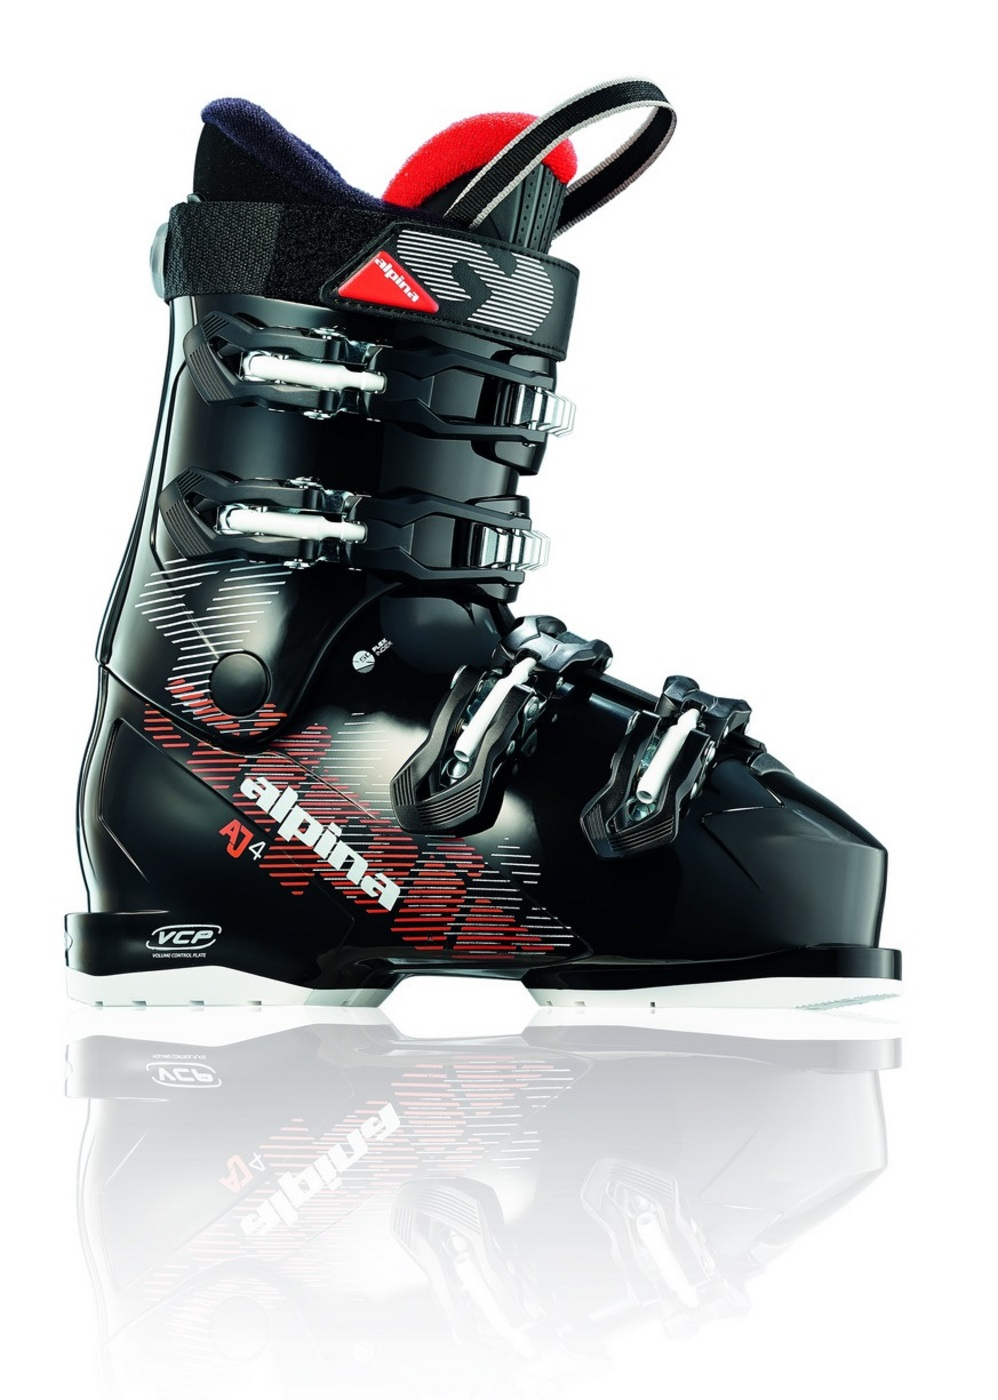 Alpina Youth AJ Downhill Ski Boots Fontana Sports - Alpina boots